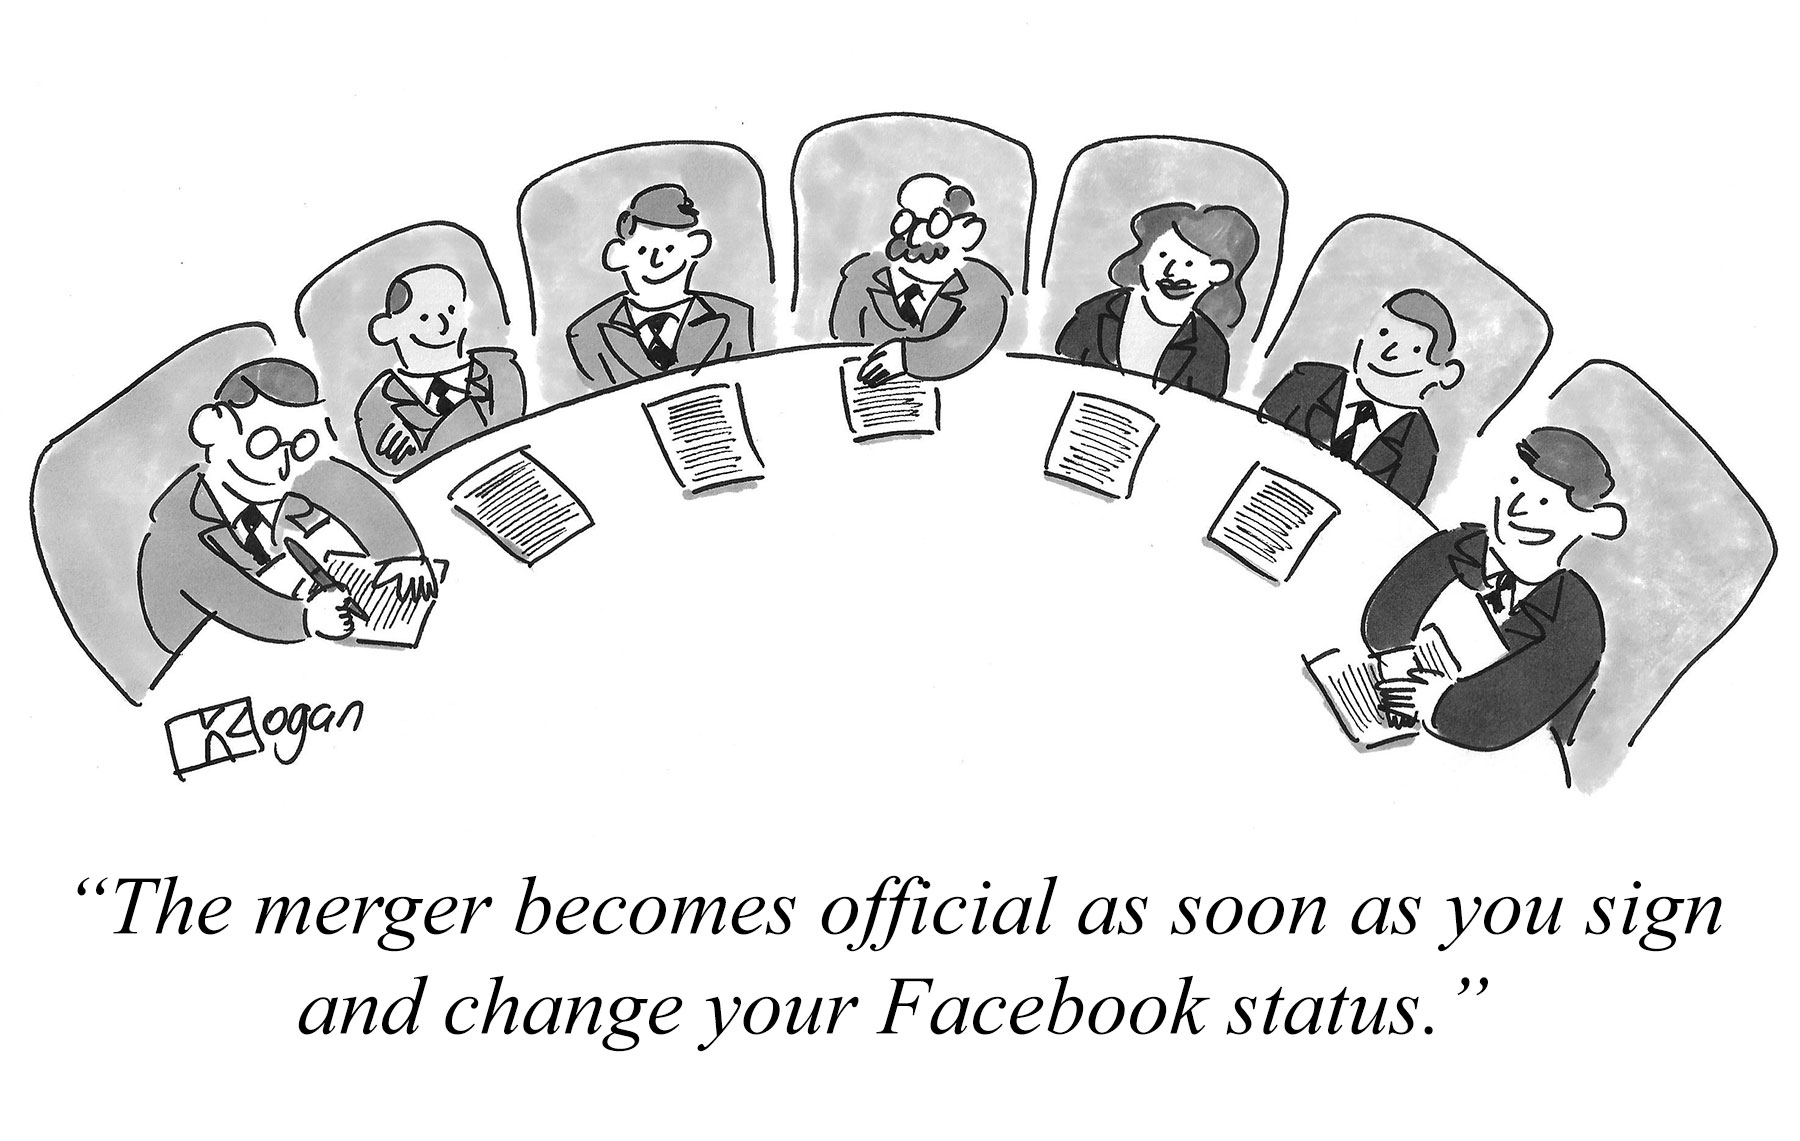 The merger becomes official as soon as you sign and change your Facebook status.